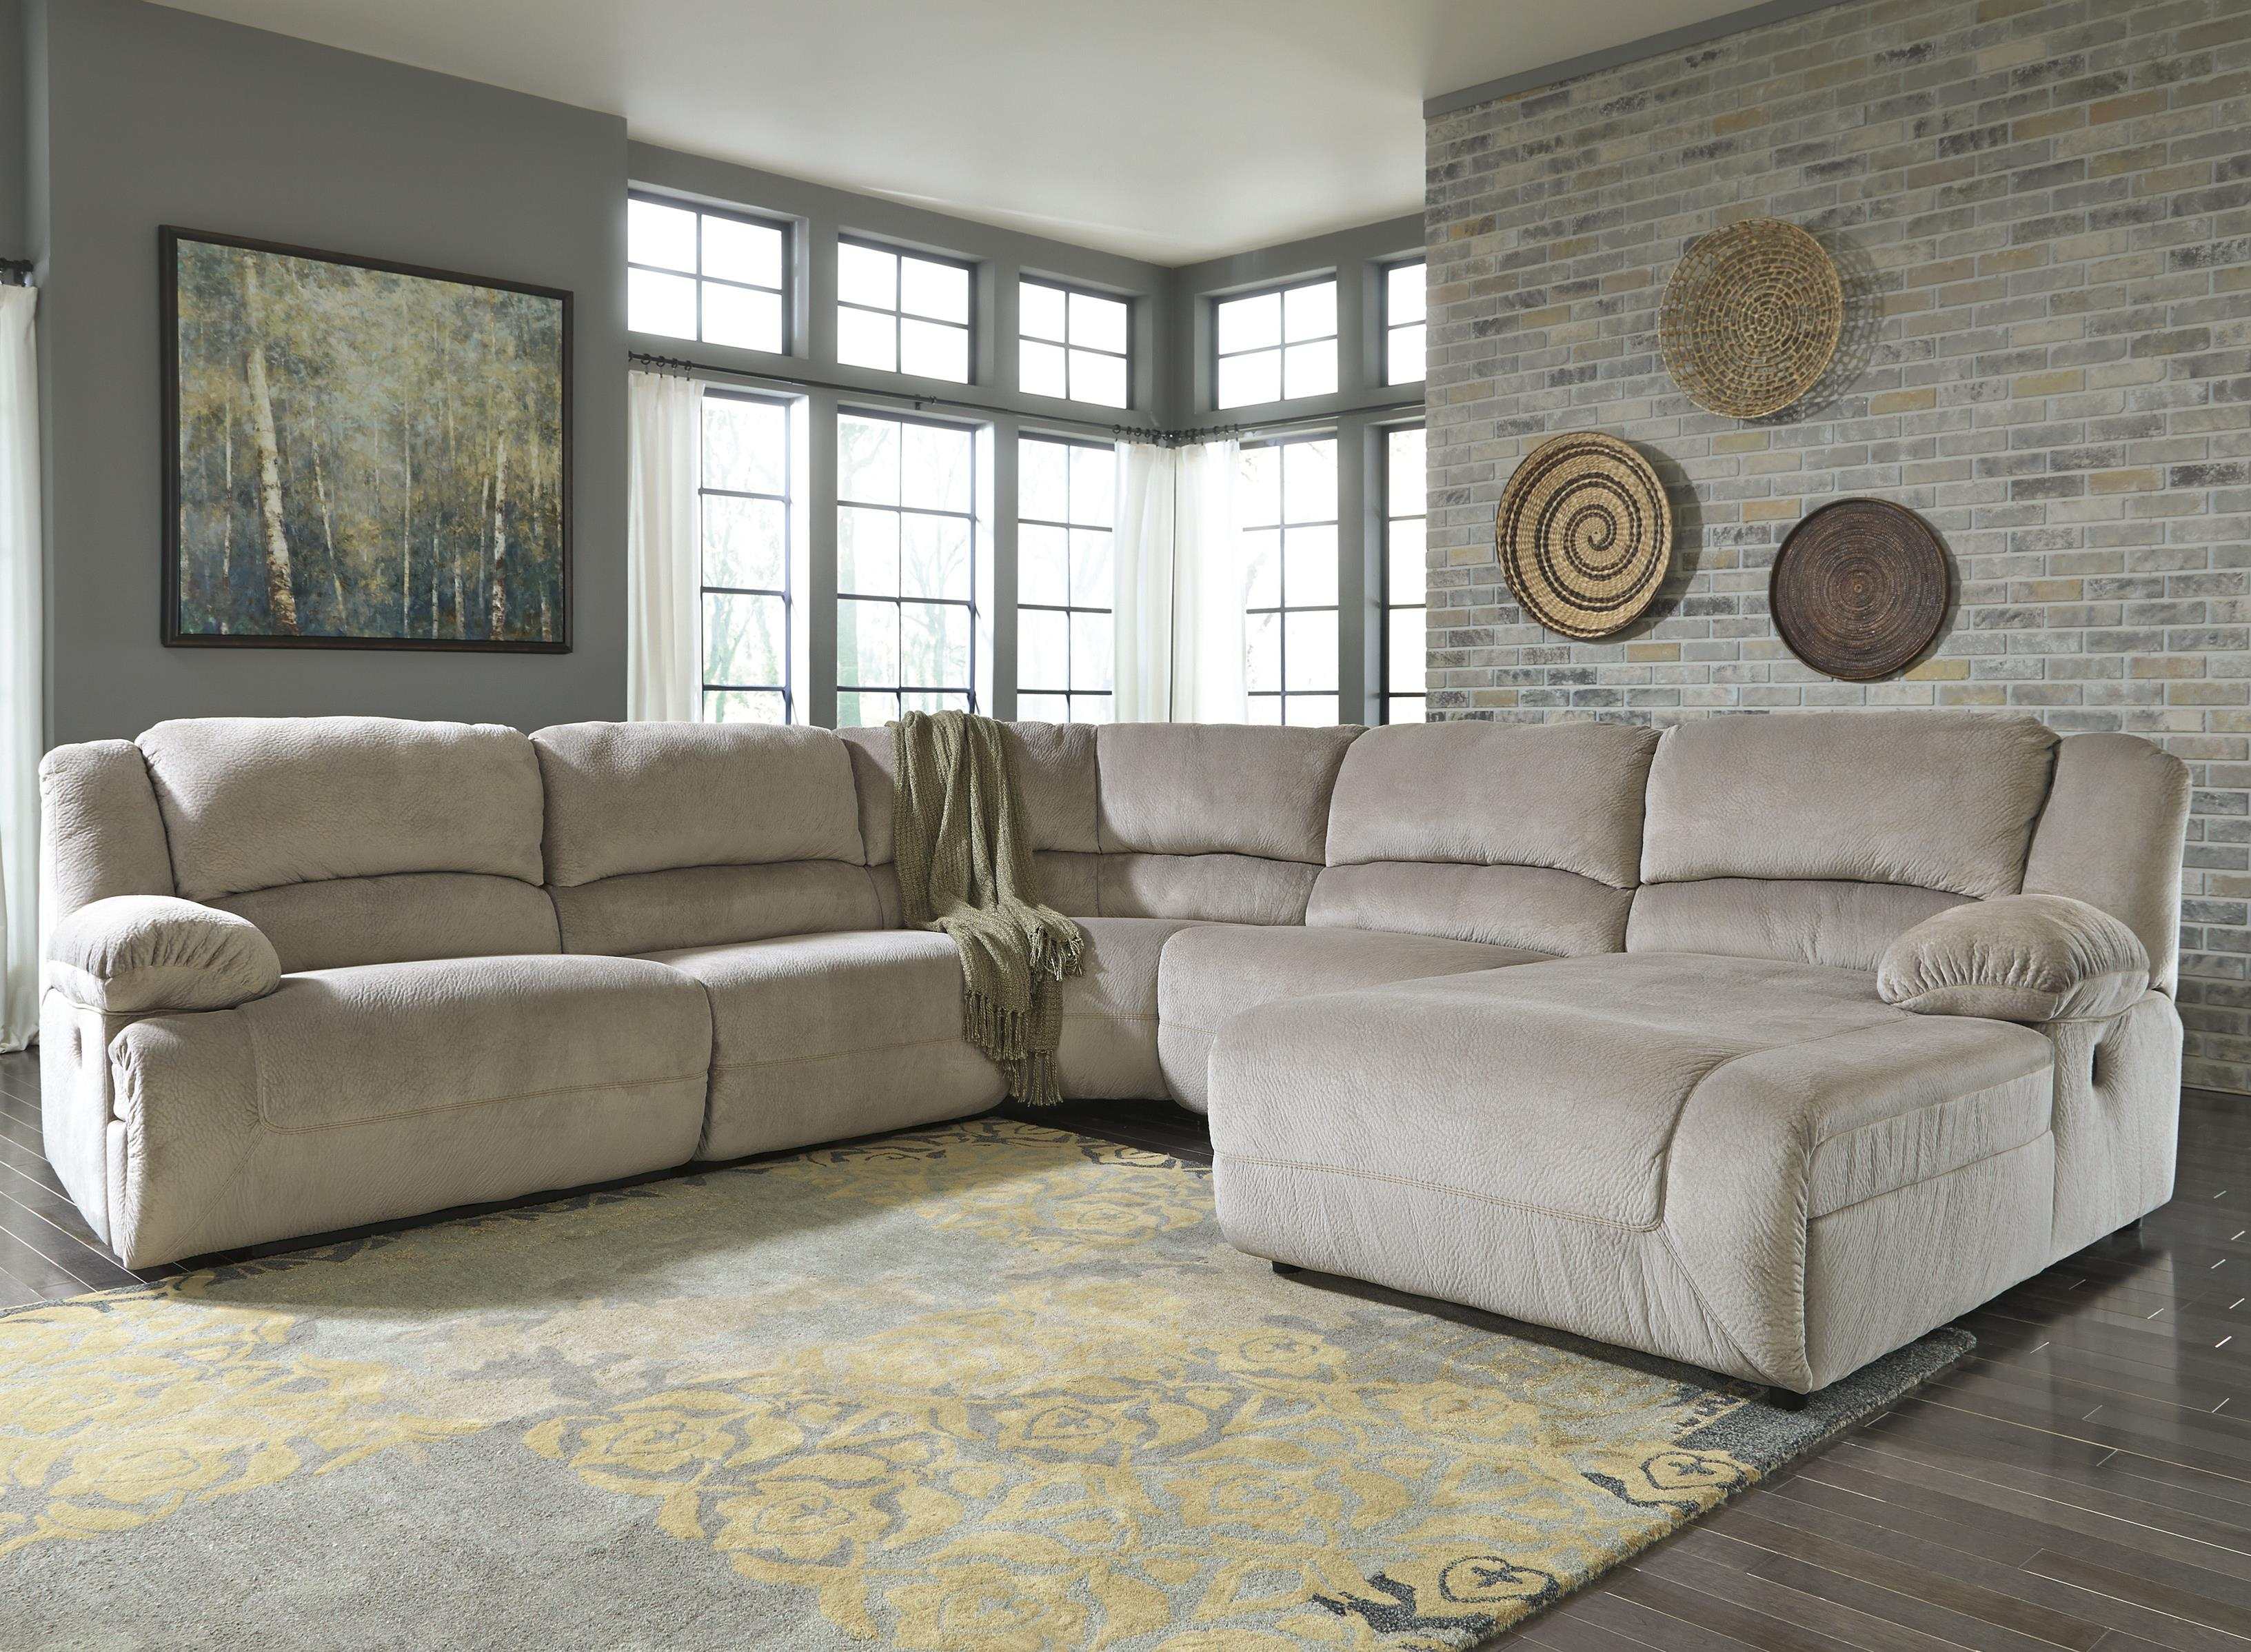 chairs marvellous chaise designs recliner pleasurable inspiration indoor design trendy reclining chair creative lounge